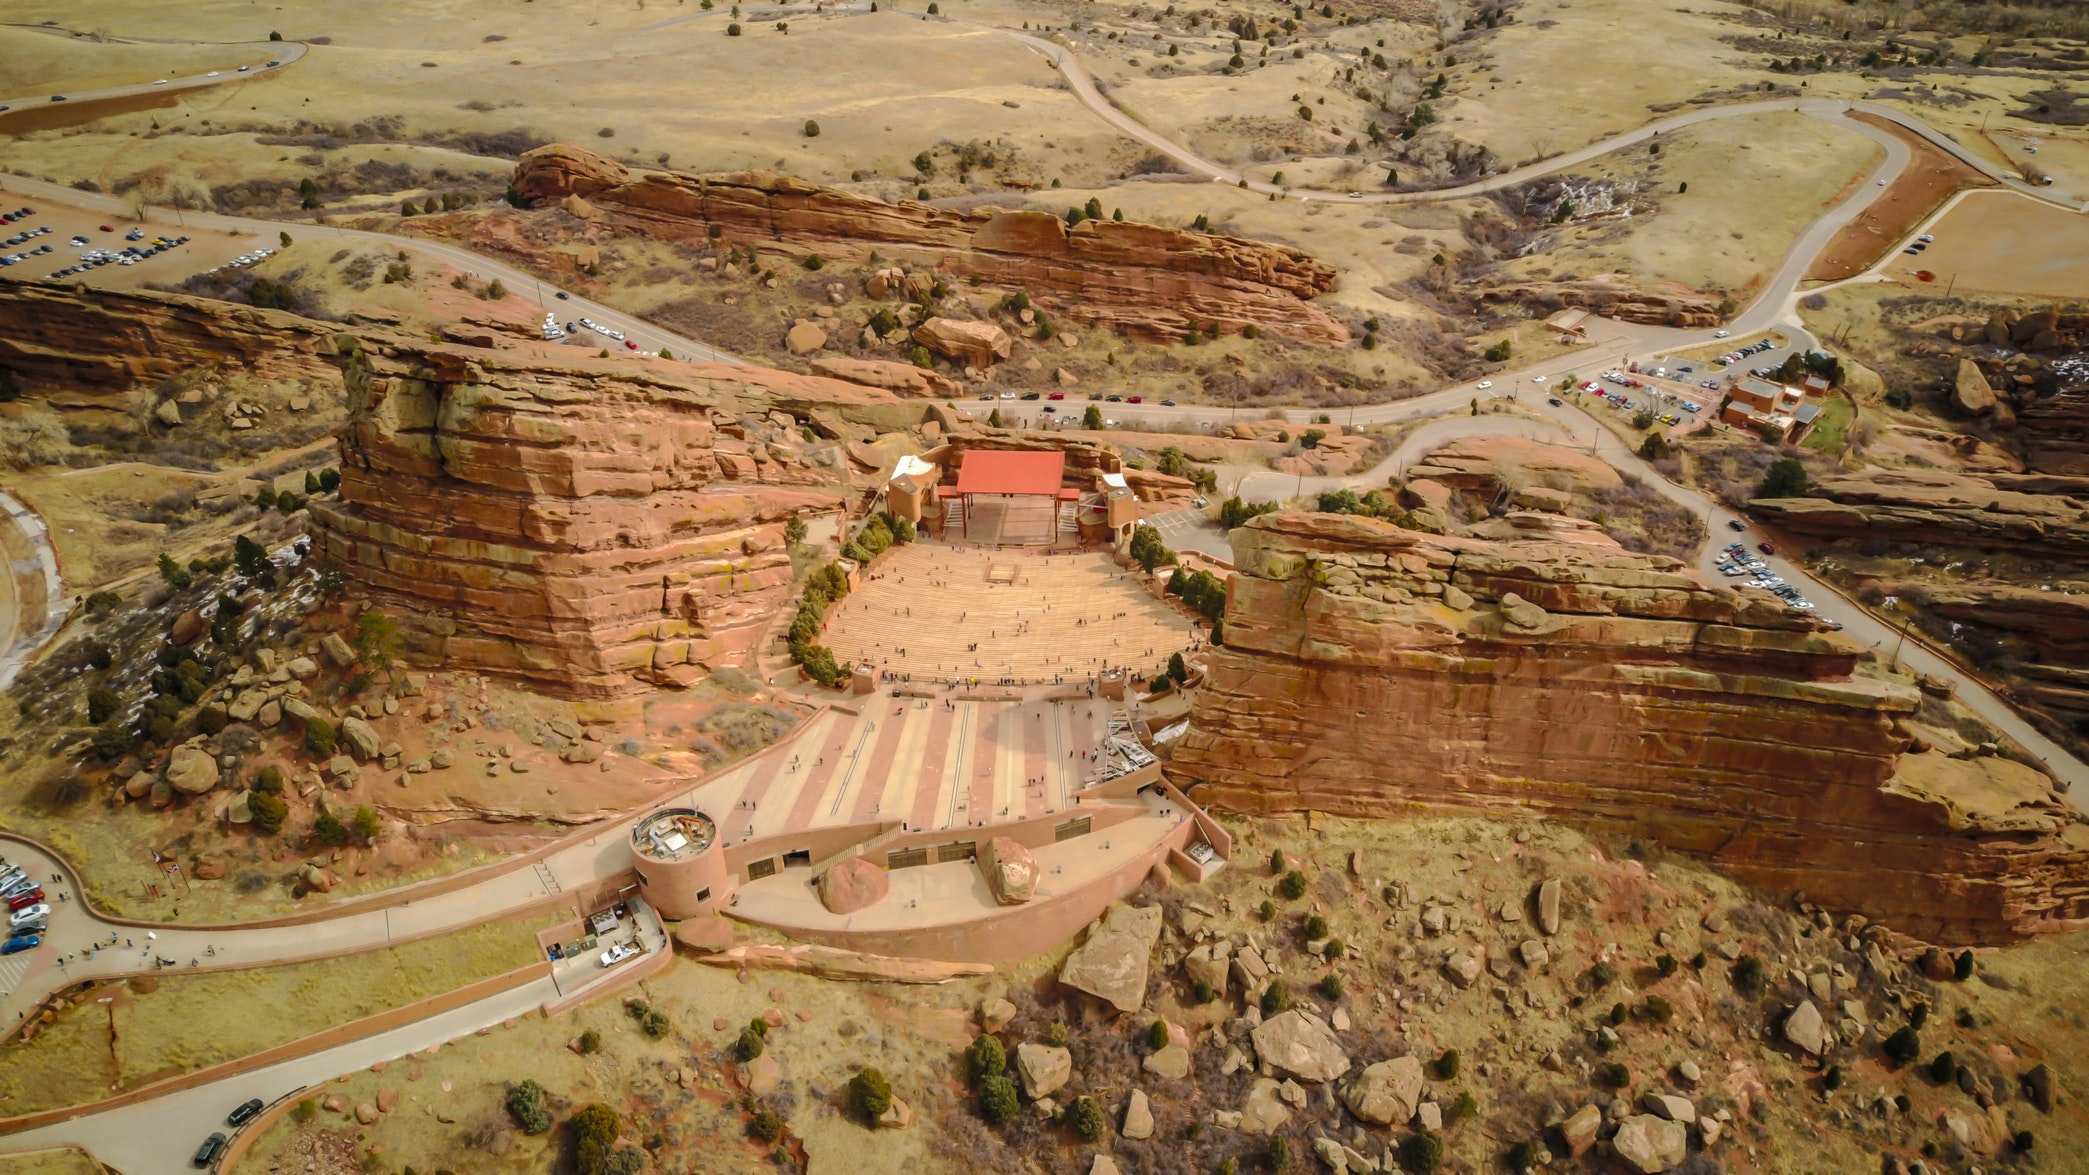 Aerial view of Red Rocks Amphitheatre  Photo by Alex Mertz